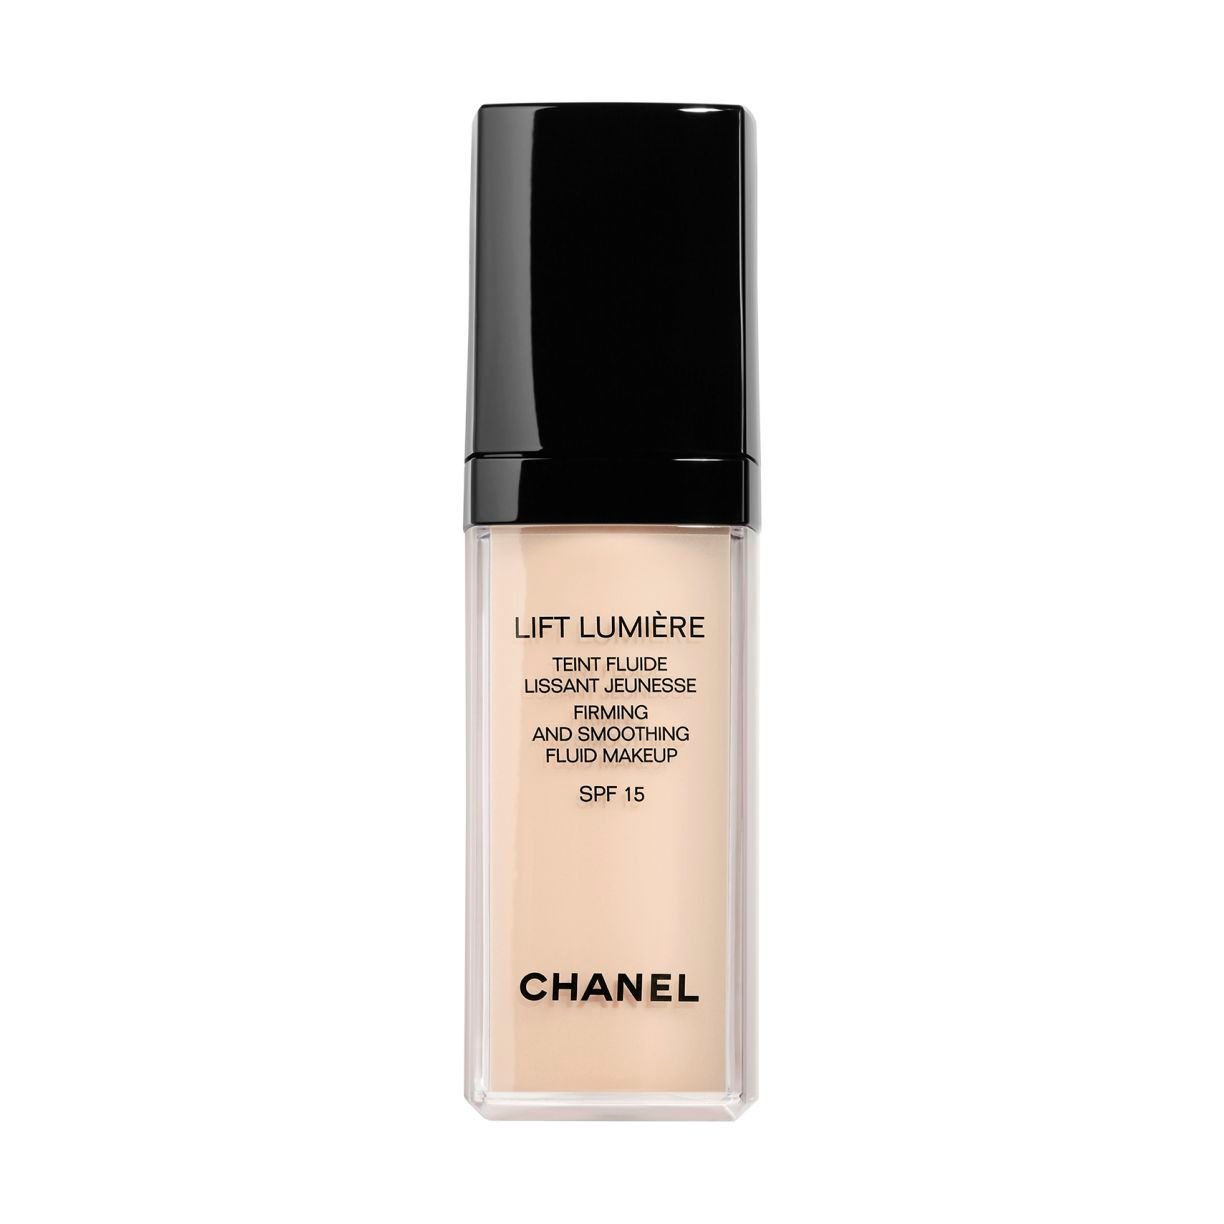 LIFT LUMIÈRE FIRMING AND SMOOTHING FLUID MAKEUP SPF 15